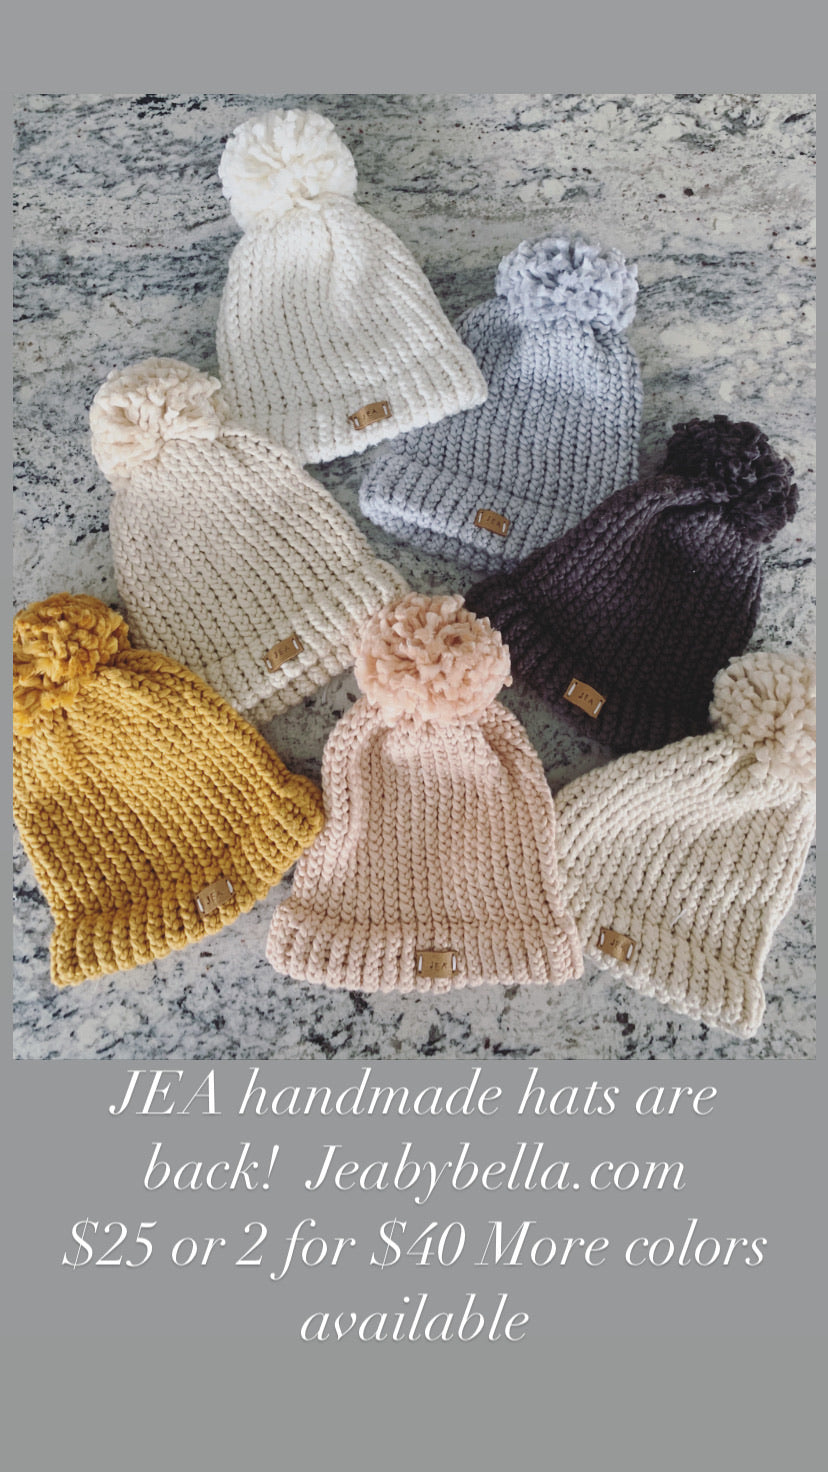 Hand Knit Winter Hats 7 colors in drop down menu